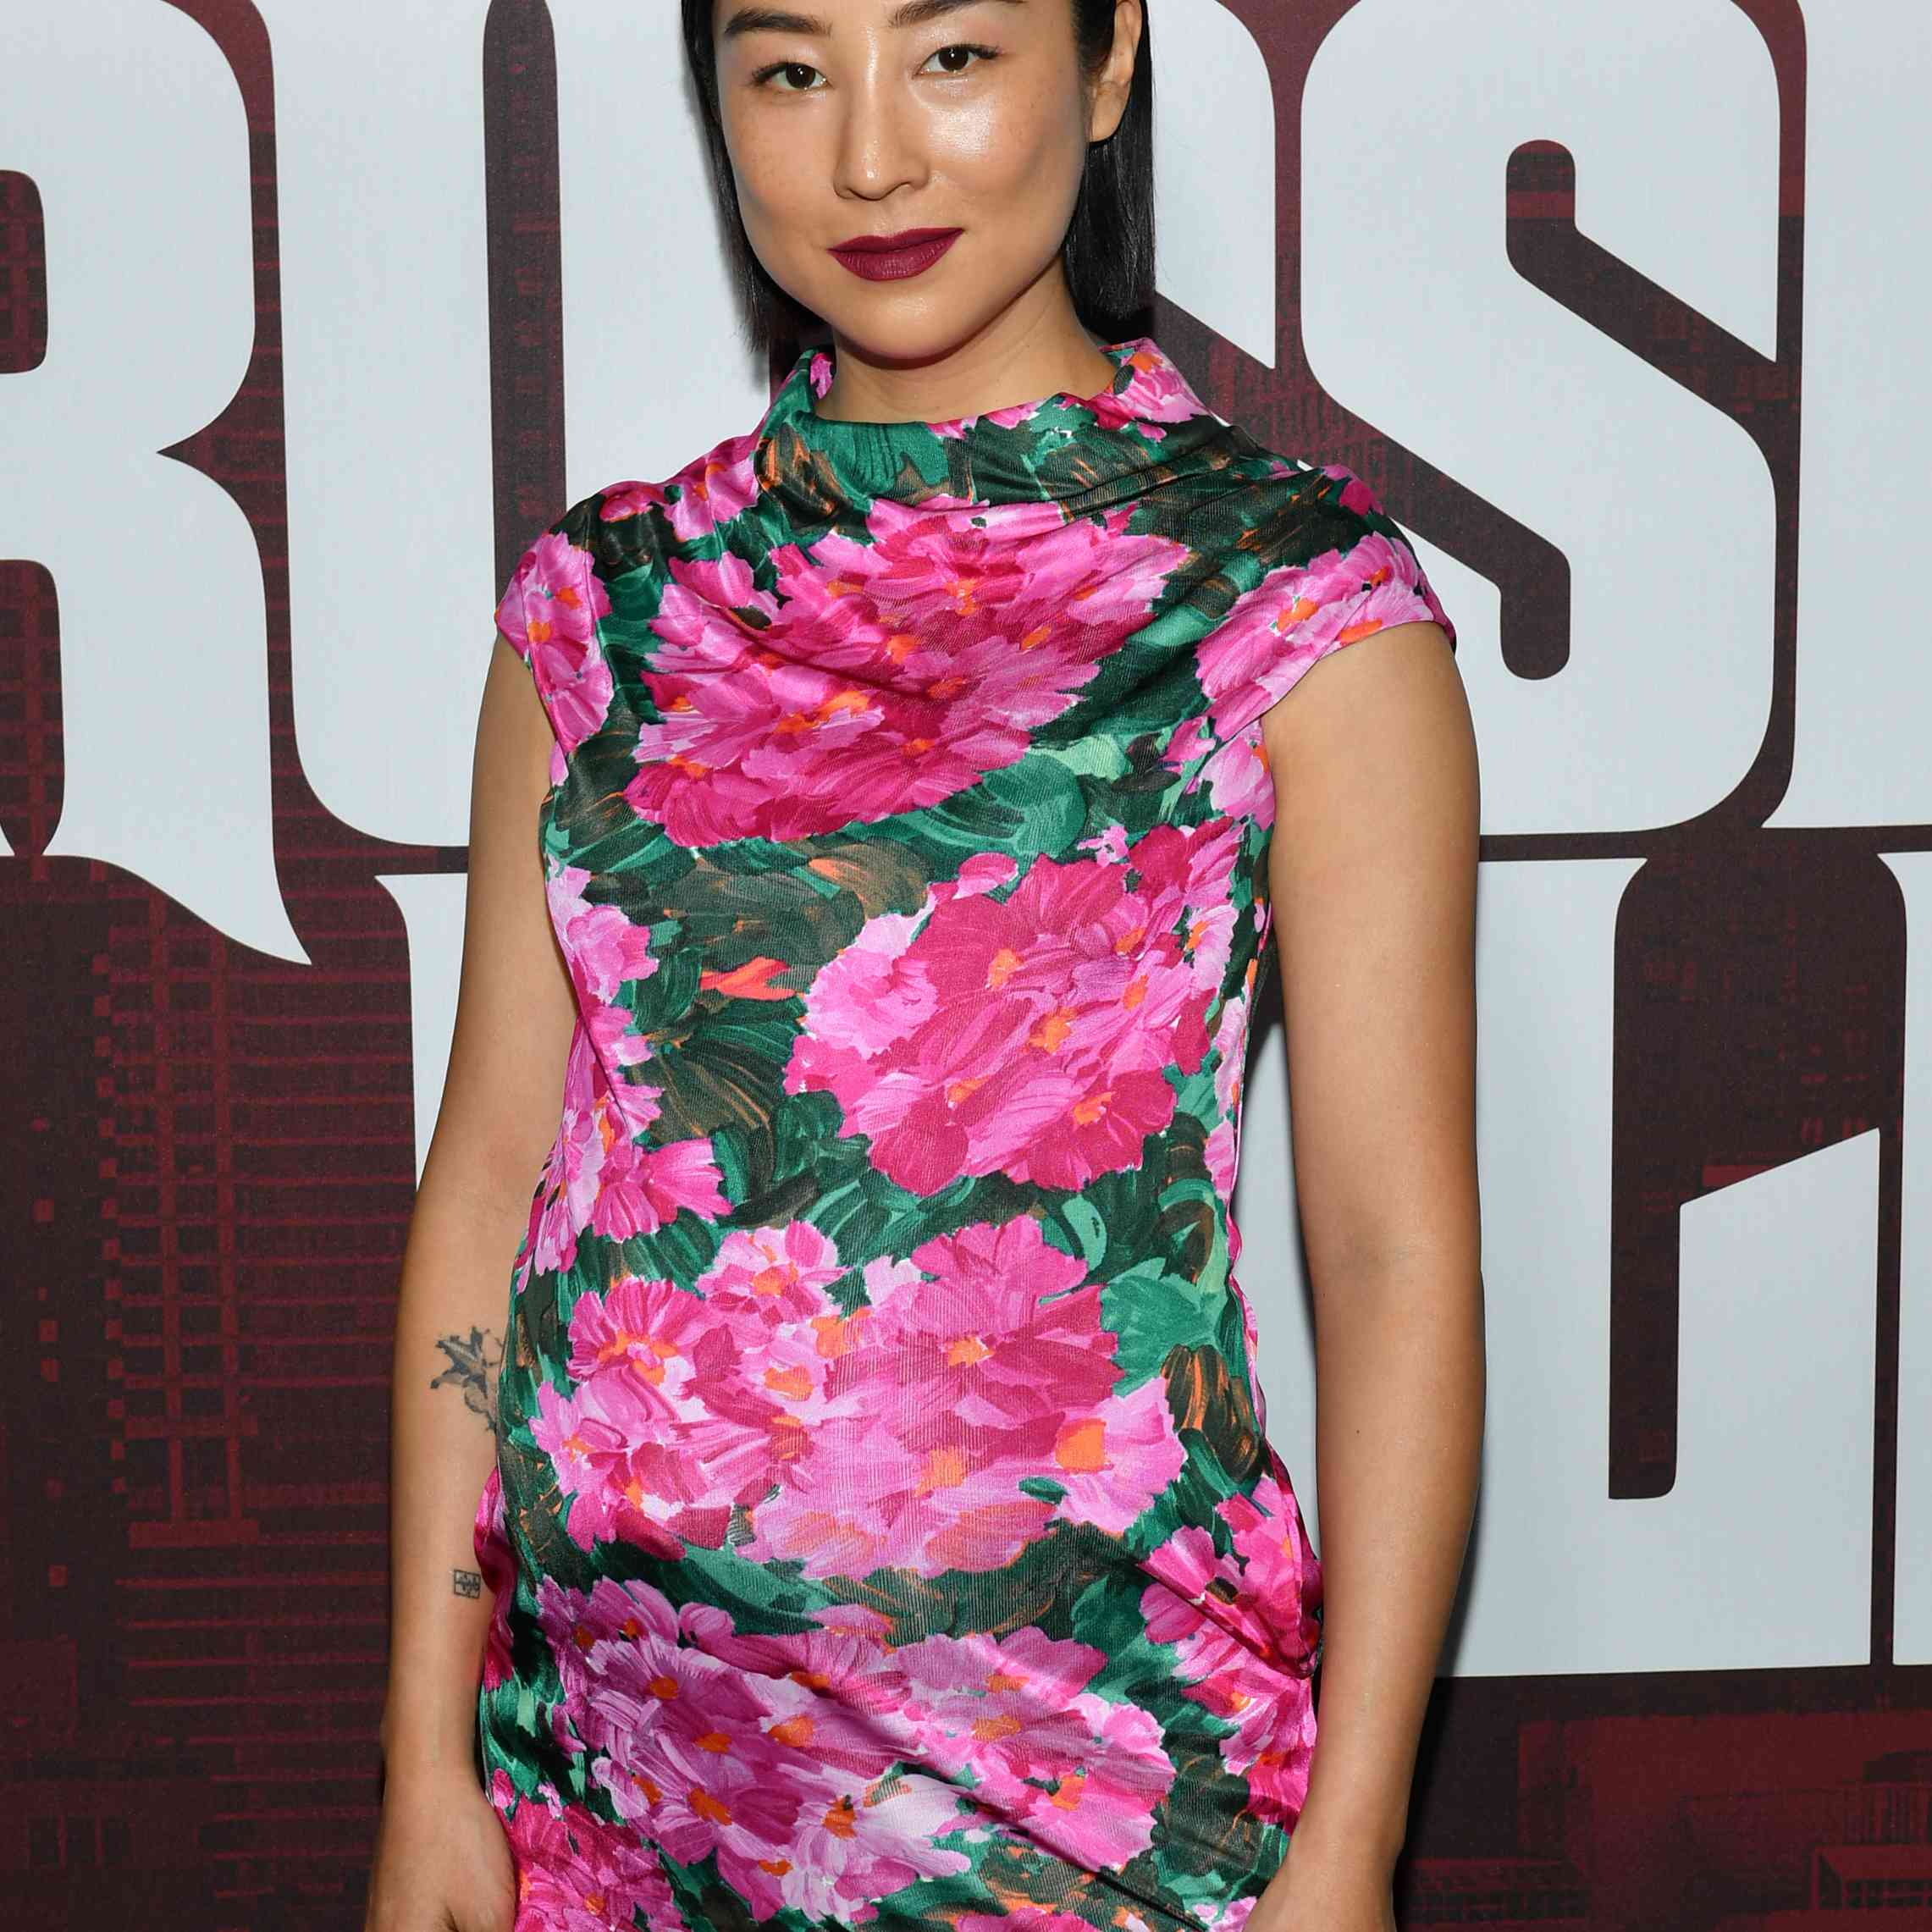 Greta Lee posing on the red carpet at Netflix's Russian Doll Season 1 premiere in New York City